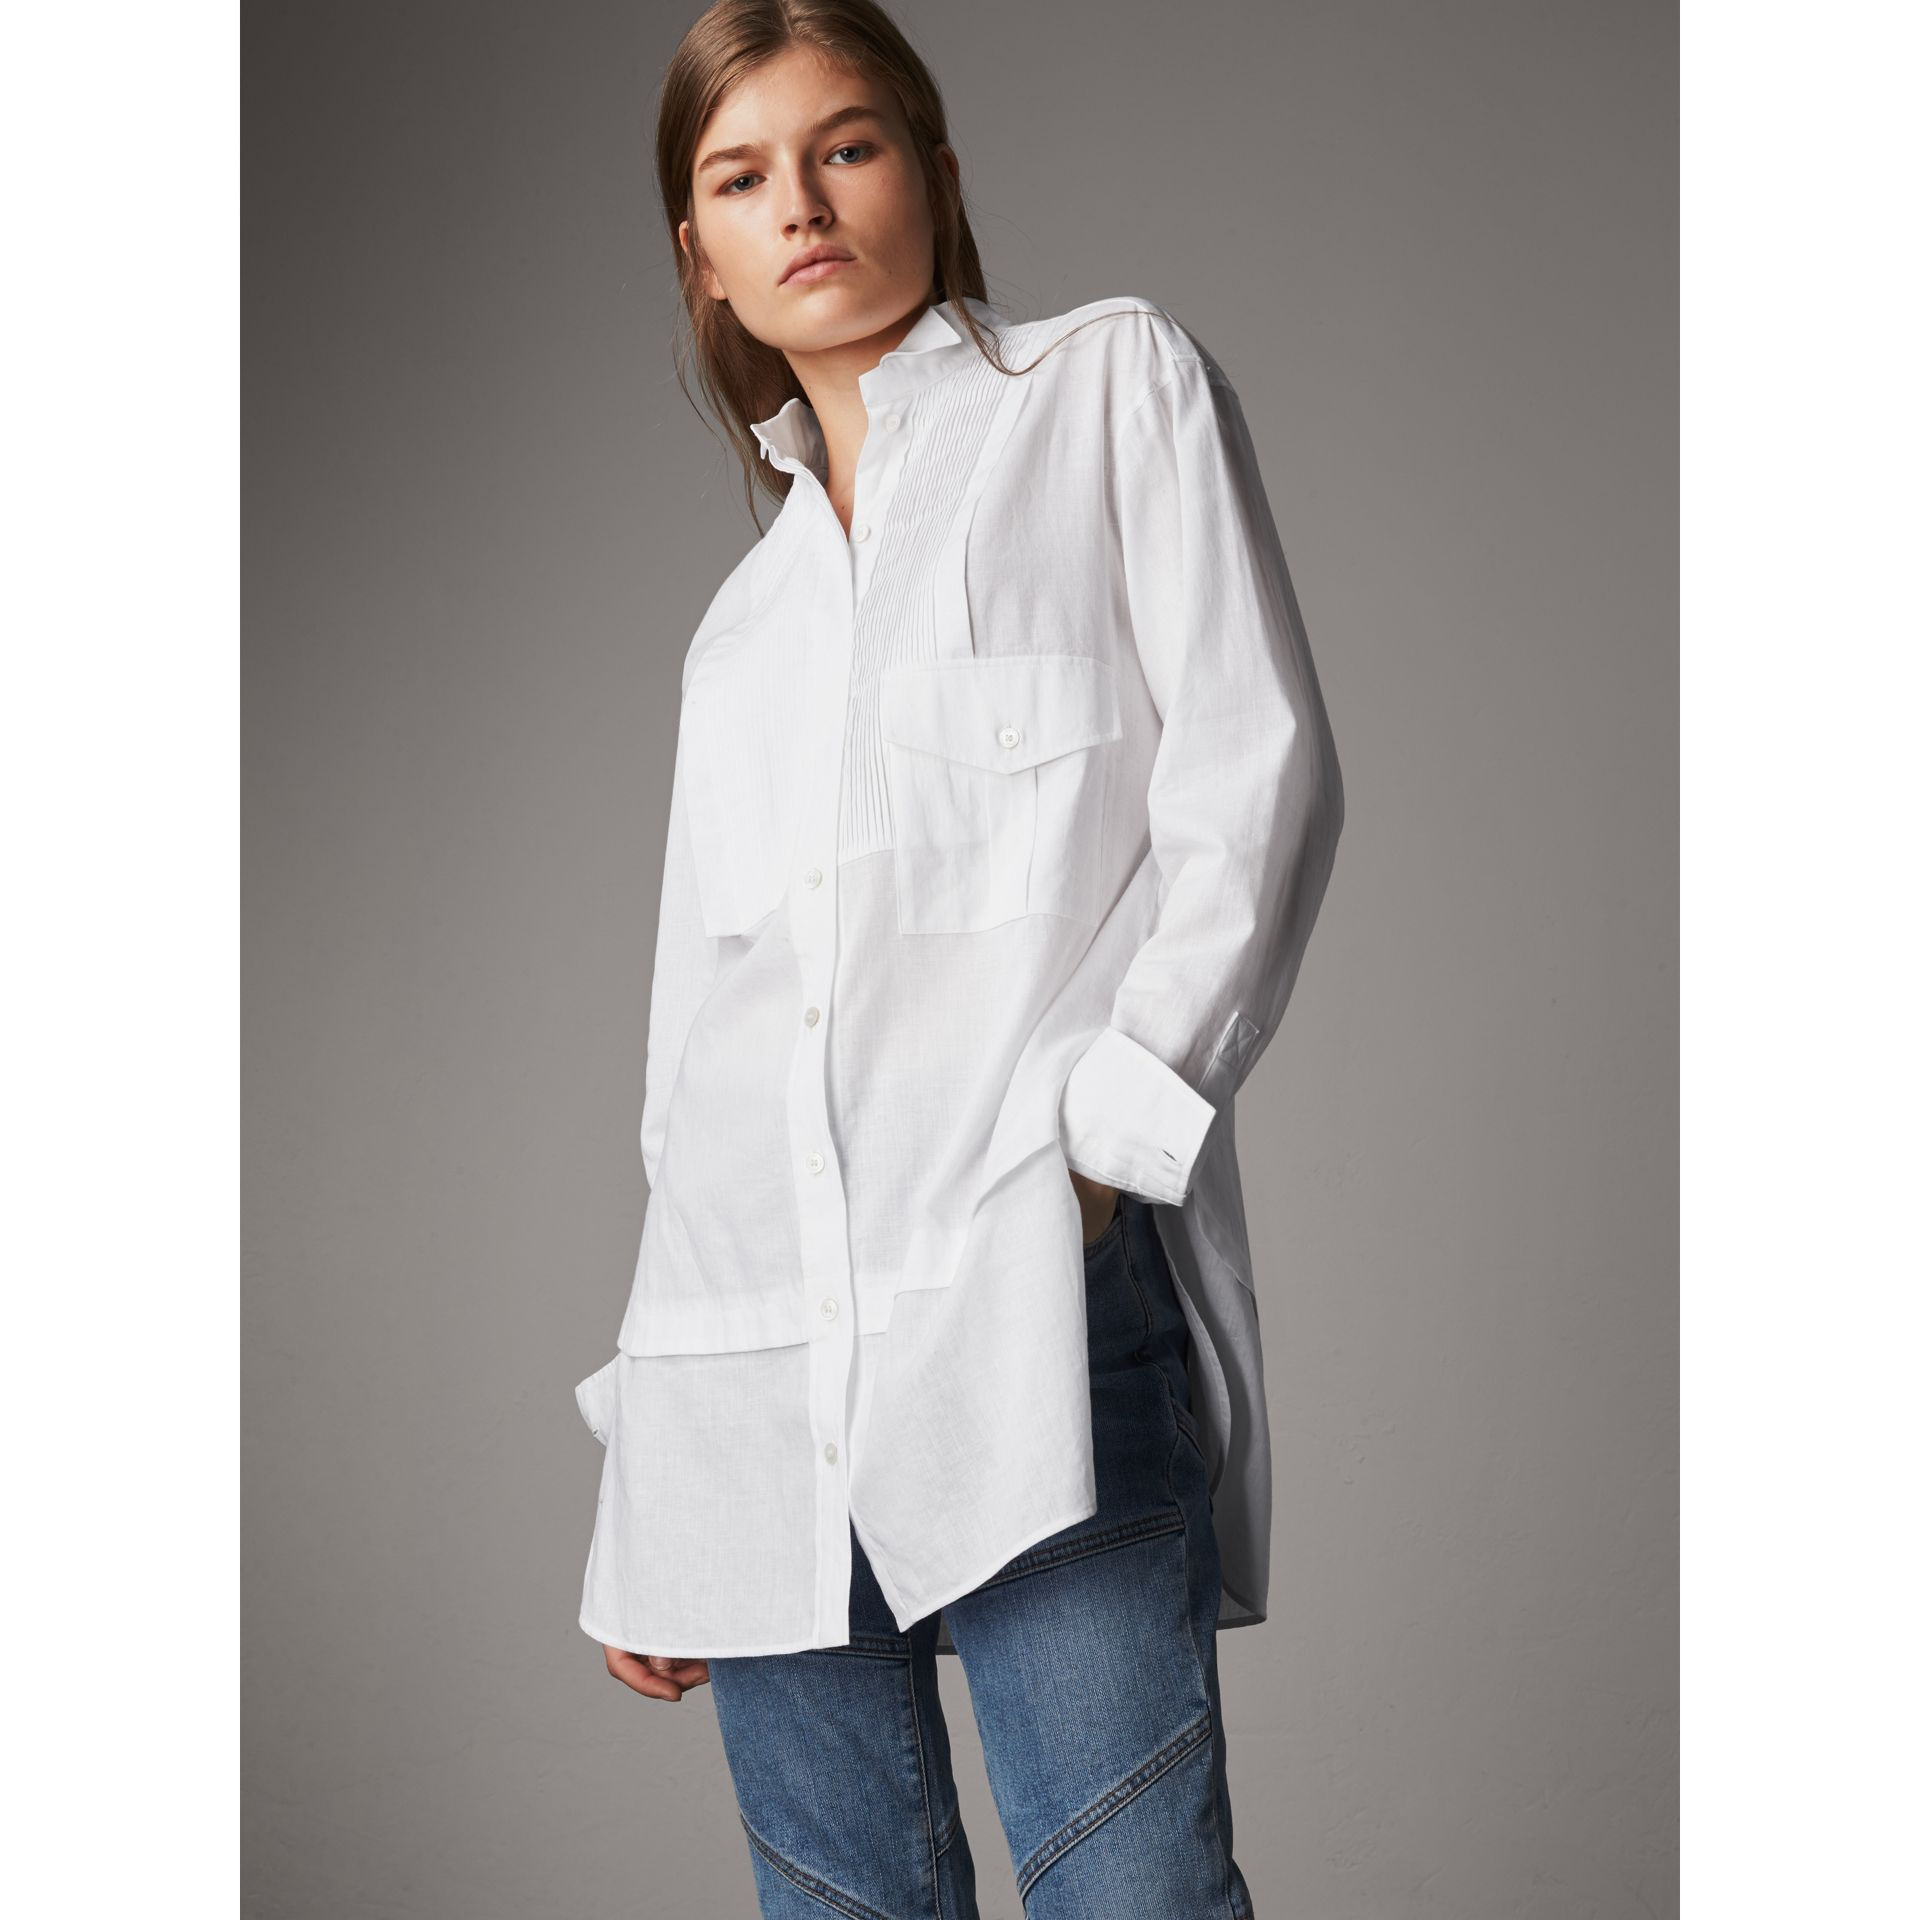 Pintuck Bib Wing Collar Longline Linen Cotton Shirt in White - Women | Burberry - gallery image 1